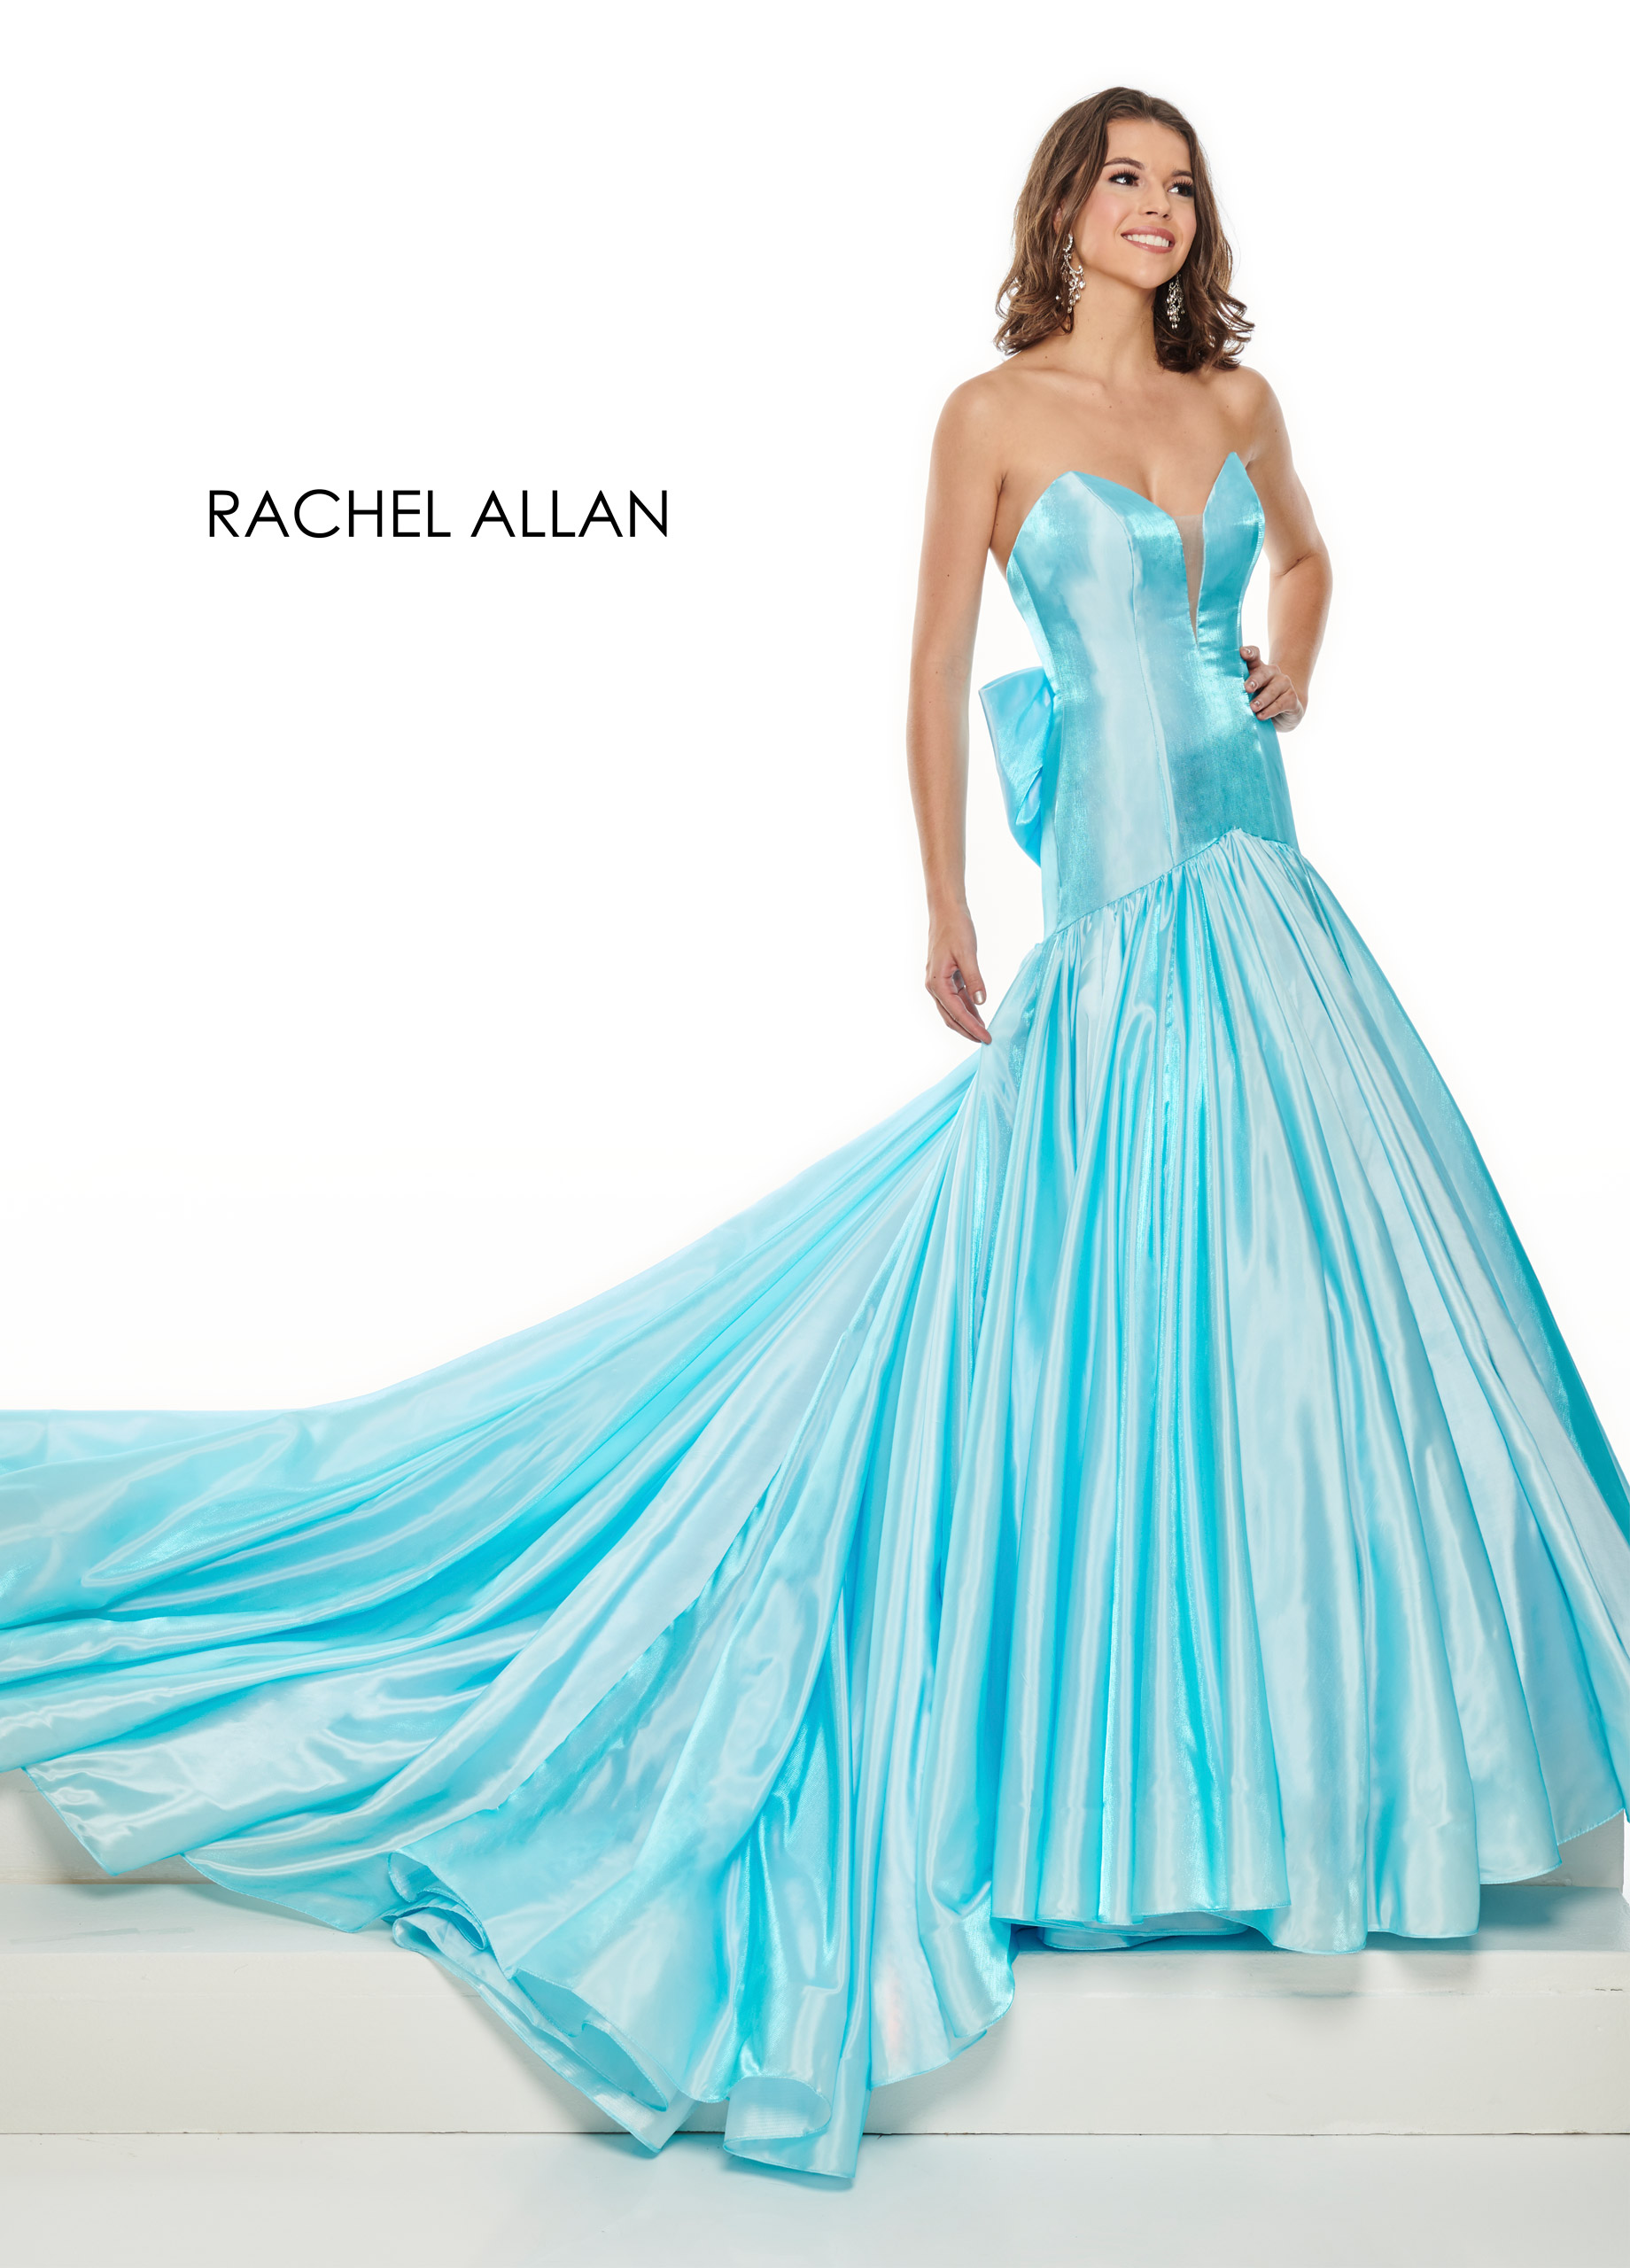 Strapless Drop Waist Pageant Dresses in Blue Color